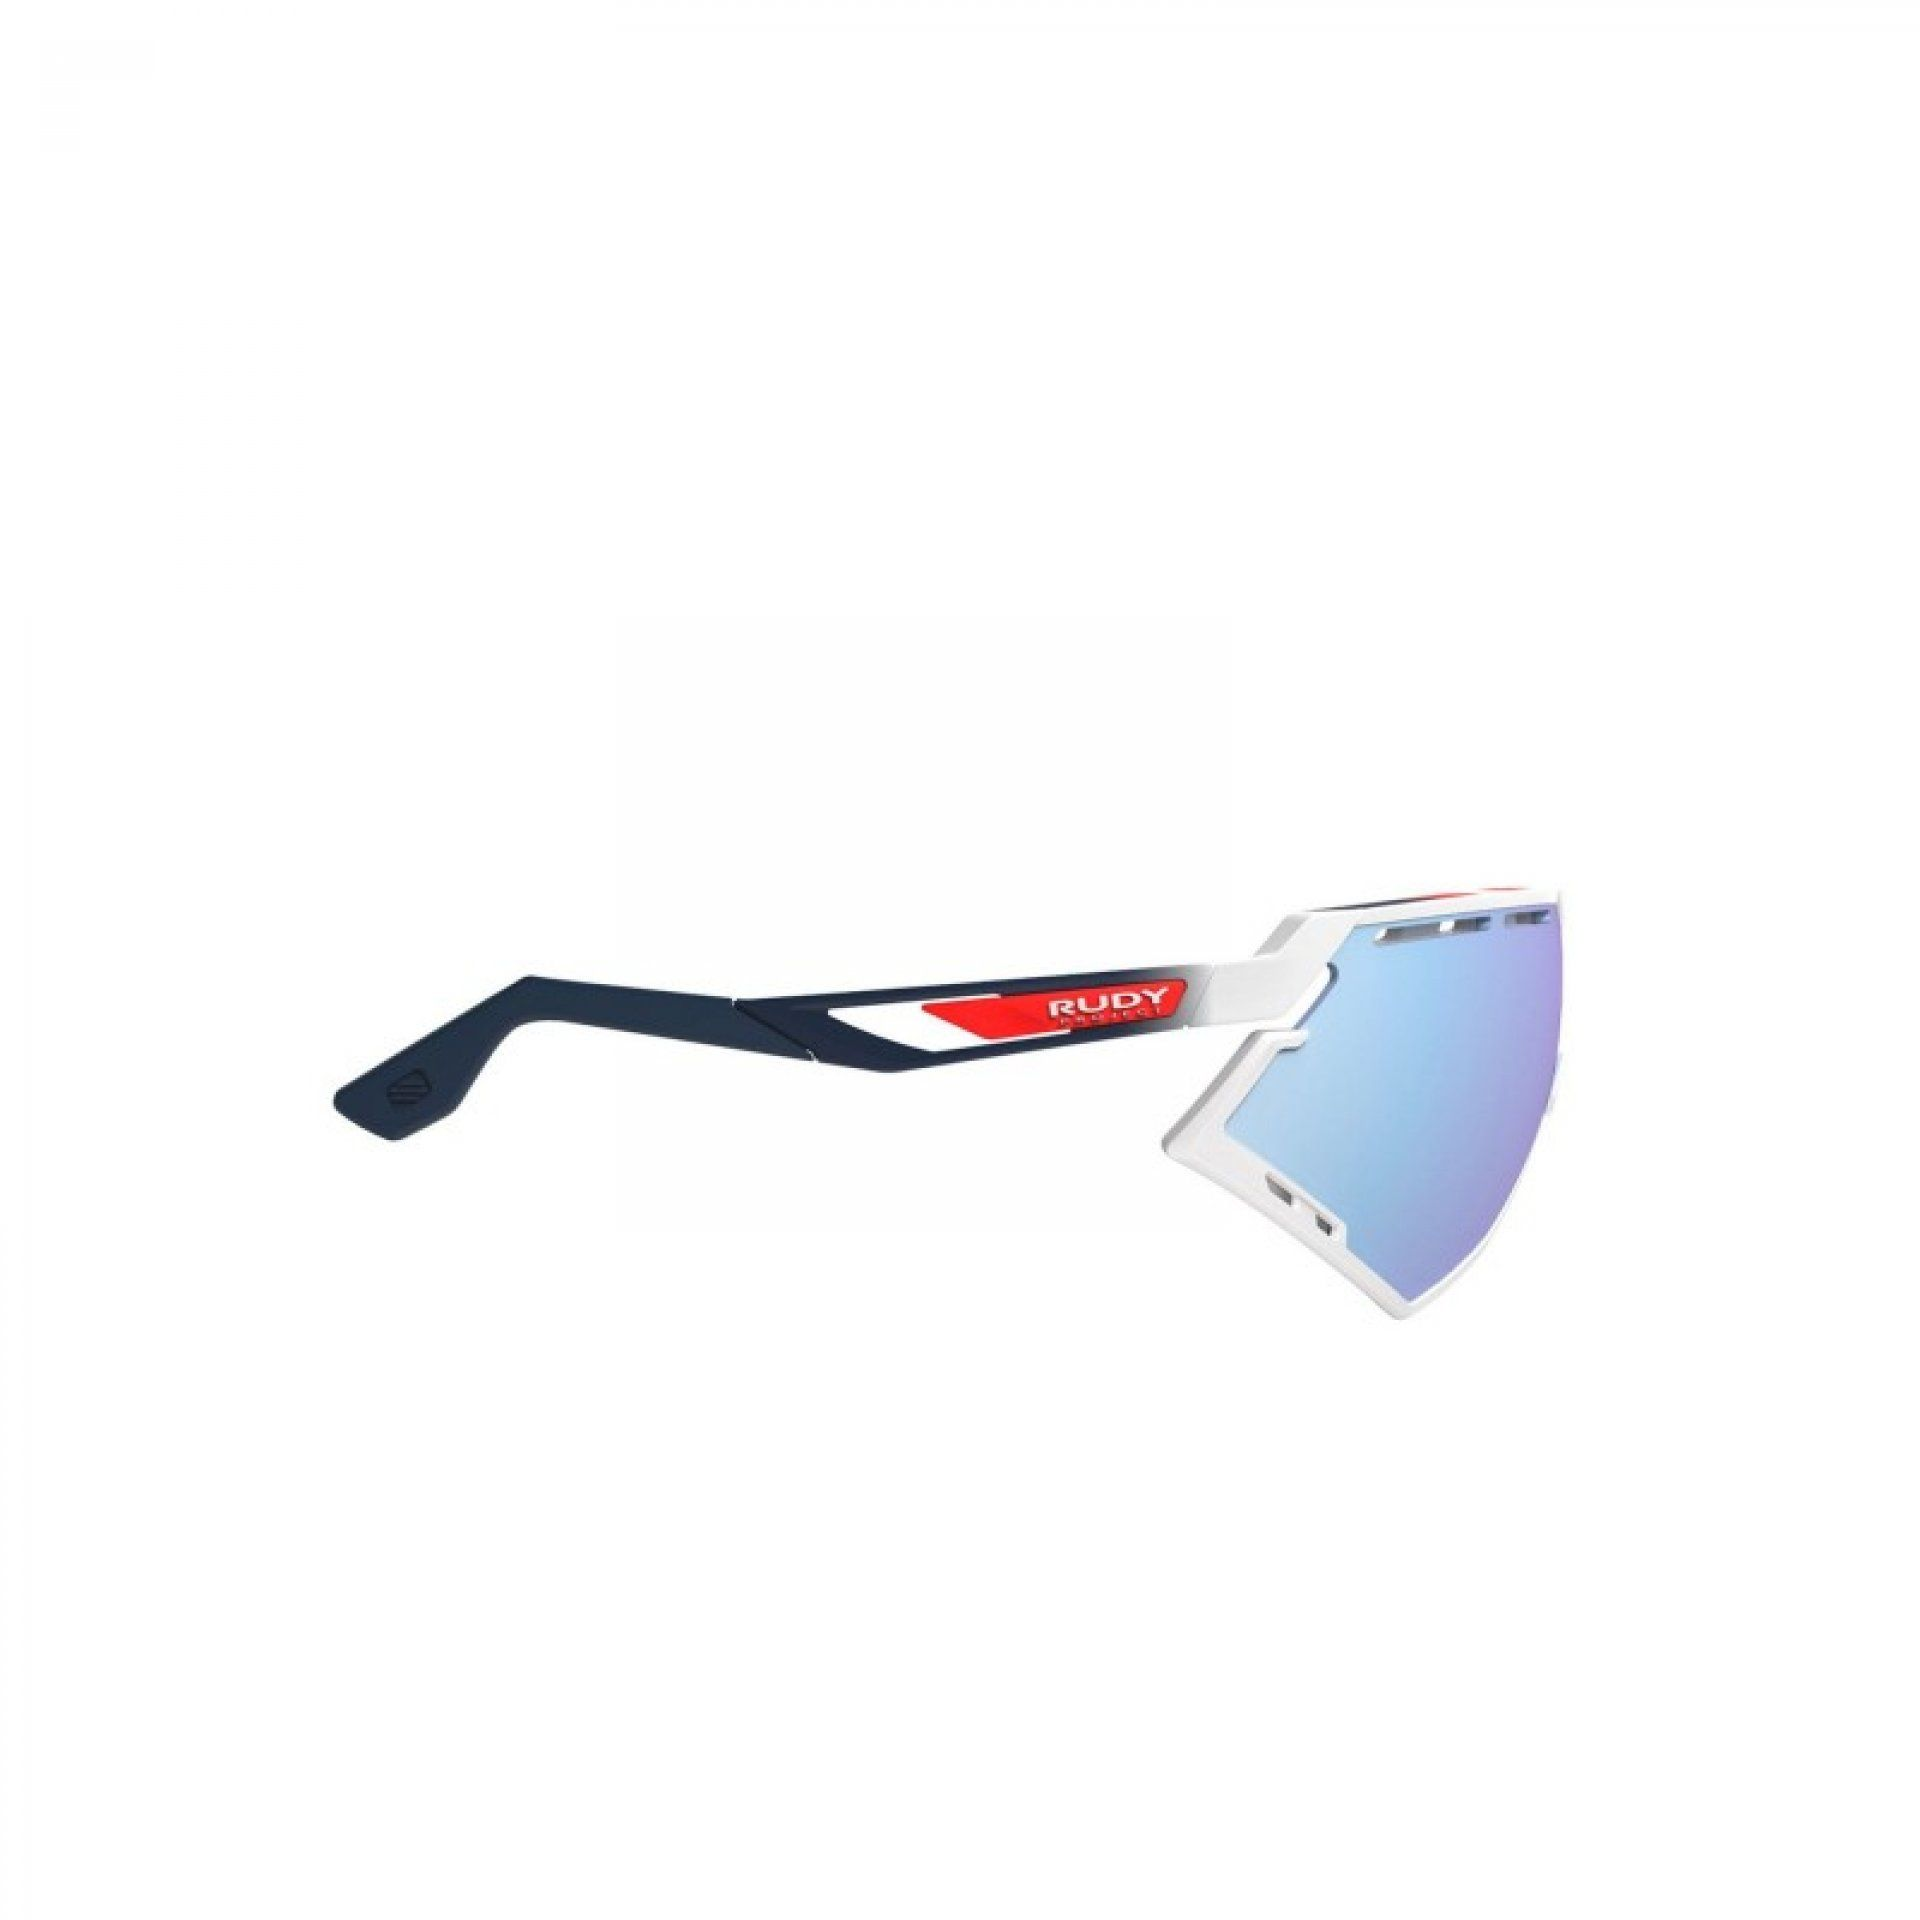 OKULARY RUDY PROJECT DEFENDER WHITE GLOSSY + MULTILASER ICE 3